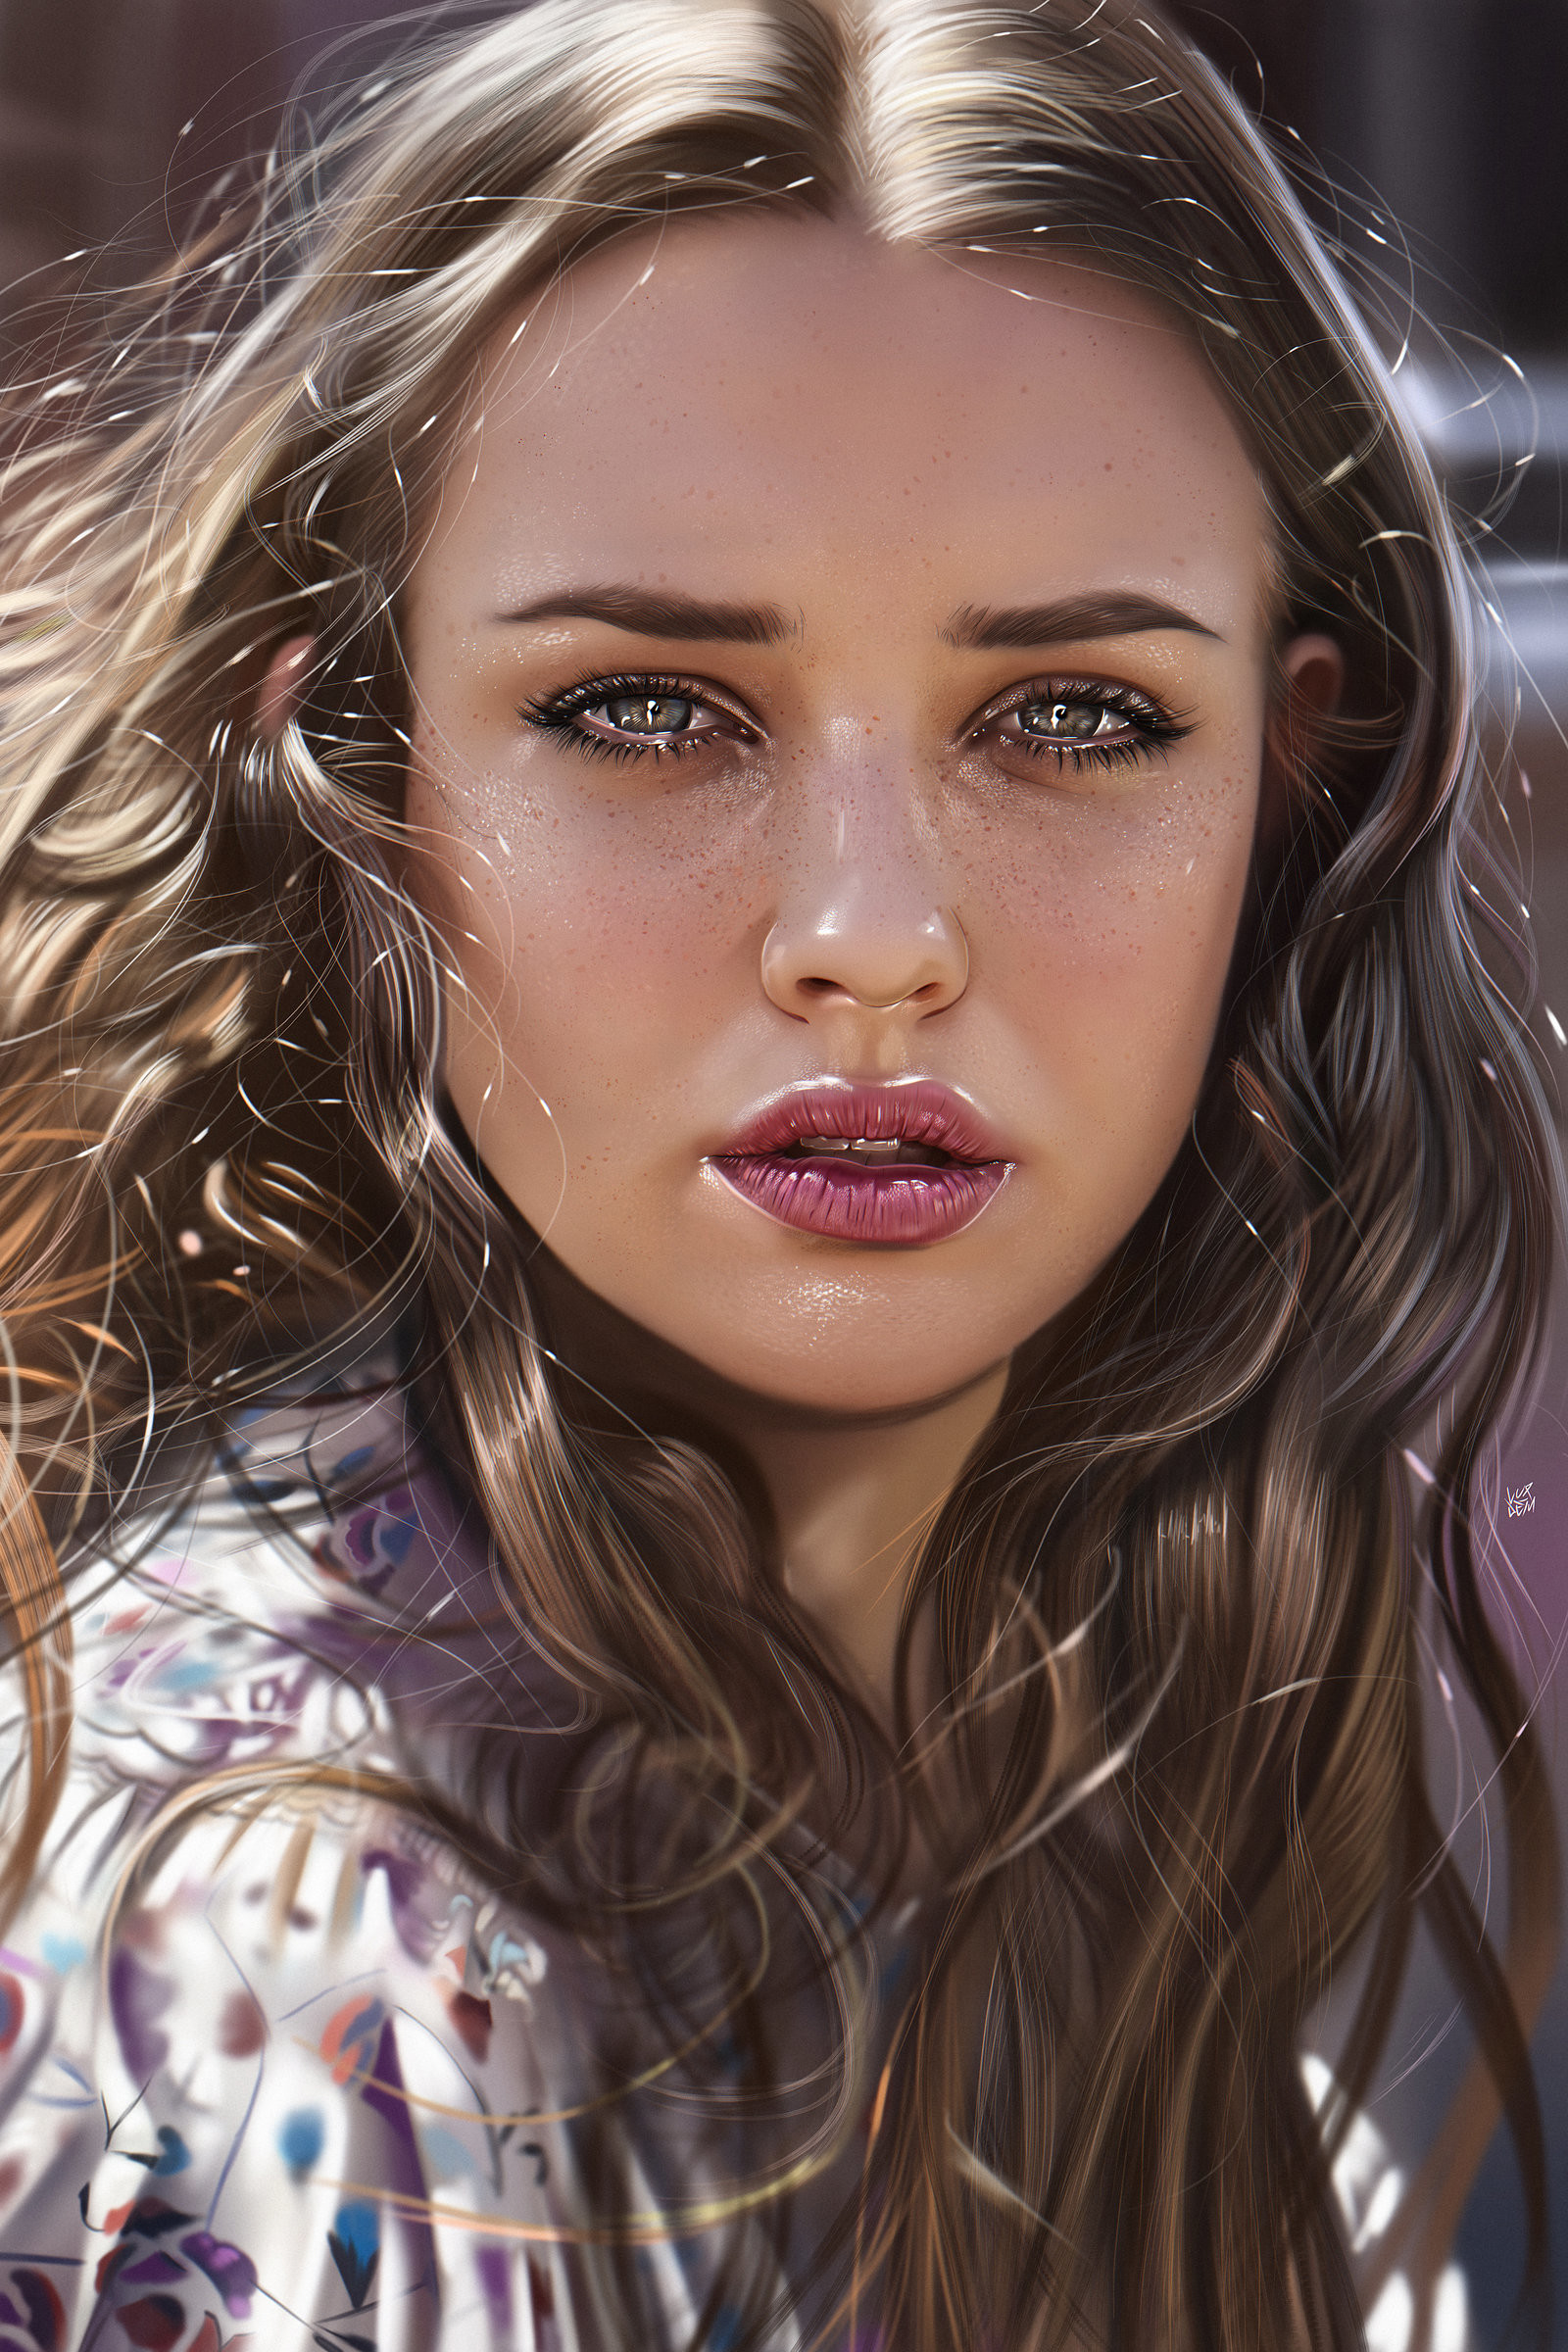 Yasar vurdem katherine langford illustration feelings by vurdem dbkcv53